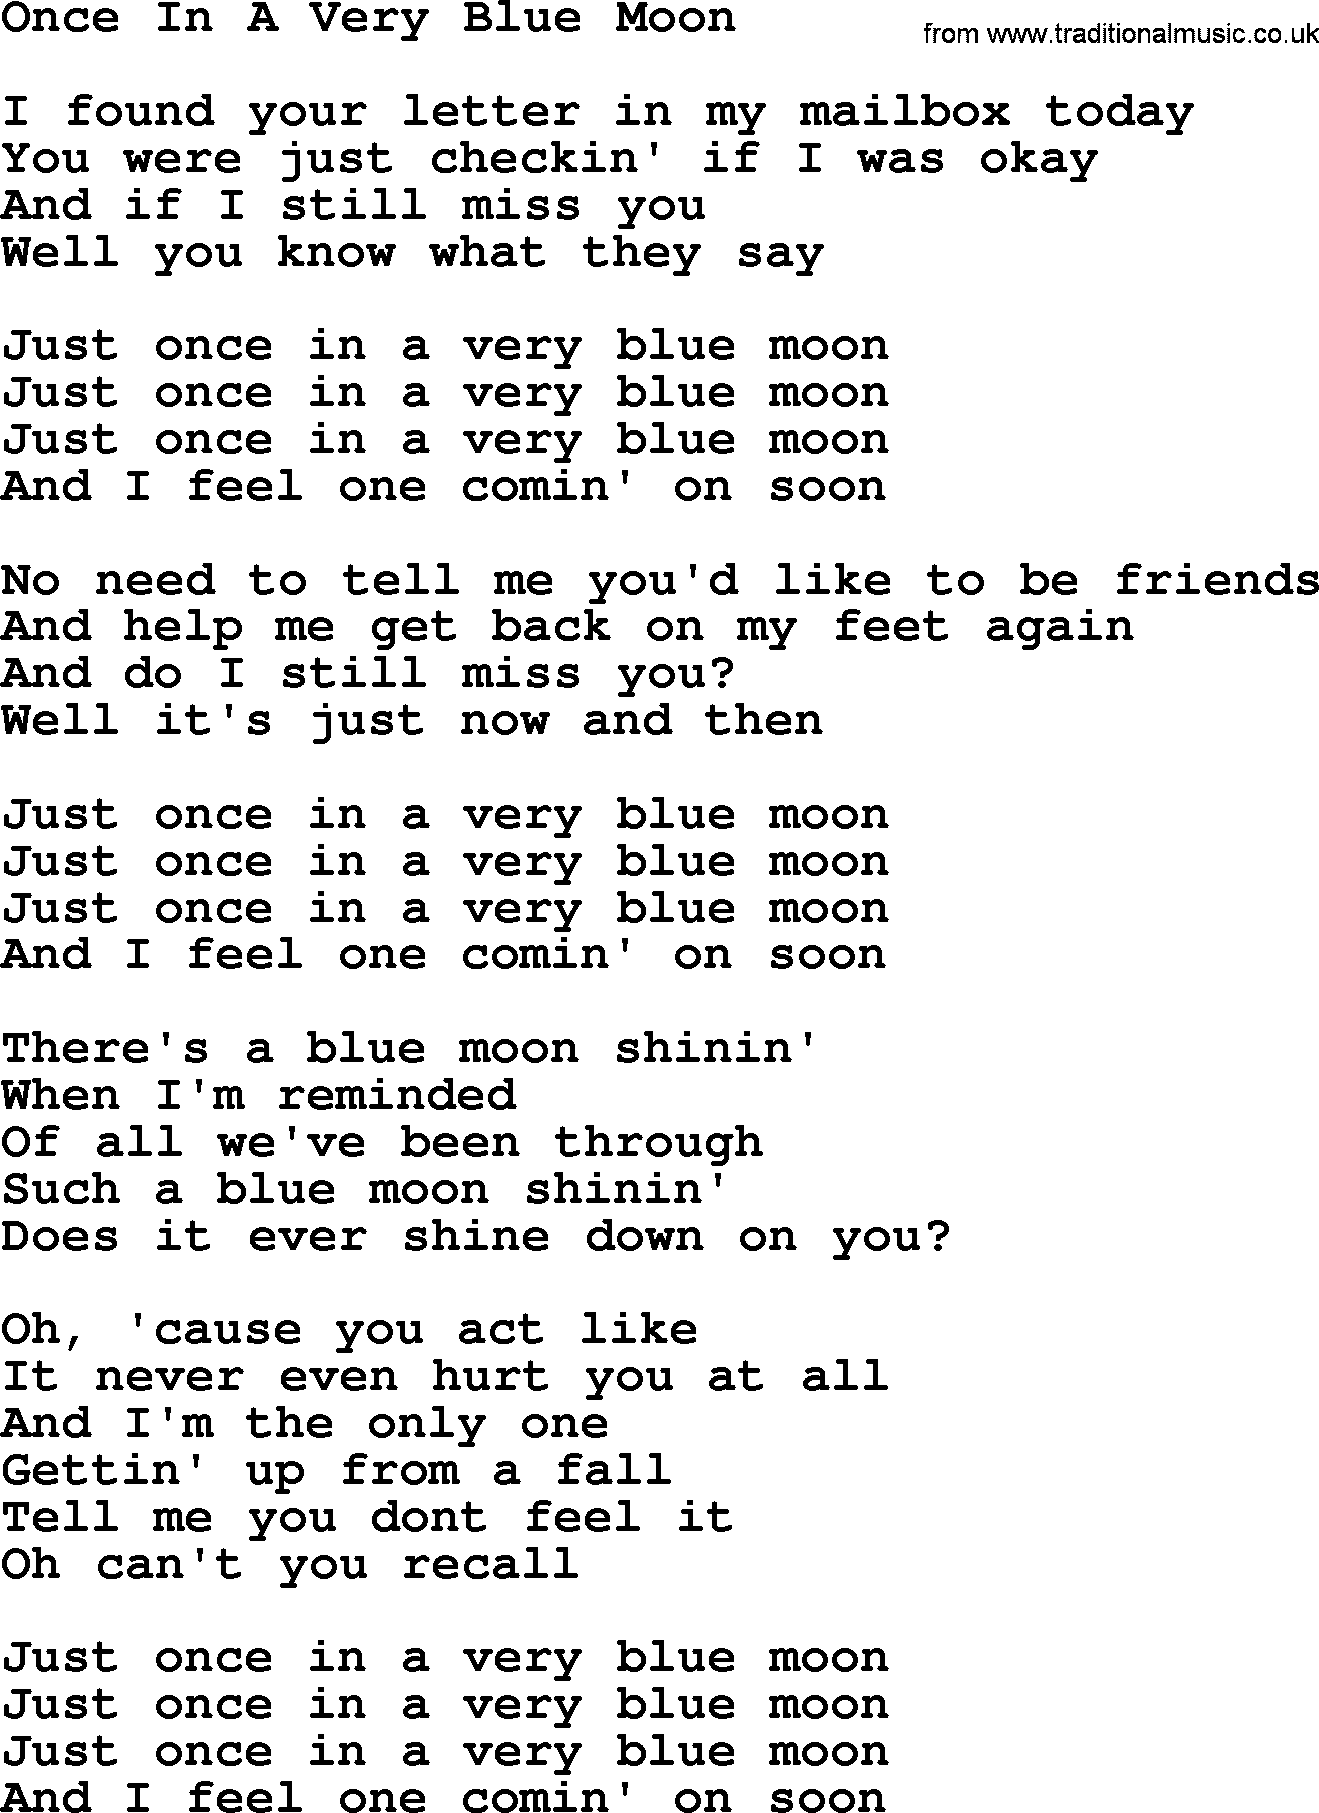 dolly parton song once in a very blue moon lyrics. Black Bedroom Furniture Sets. Home Design Ideas